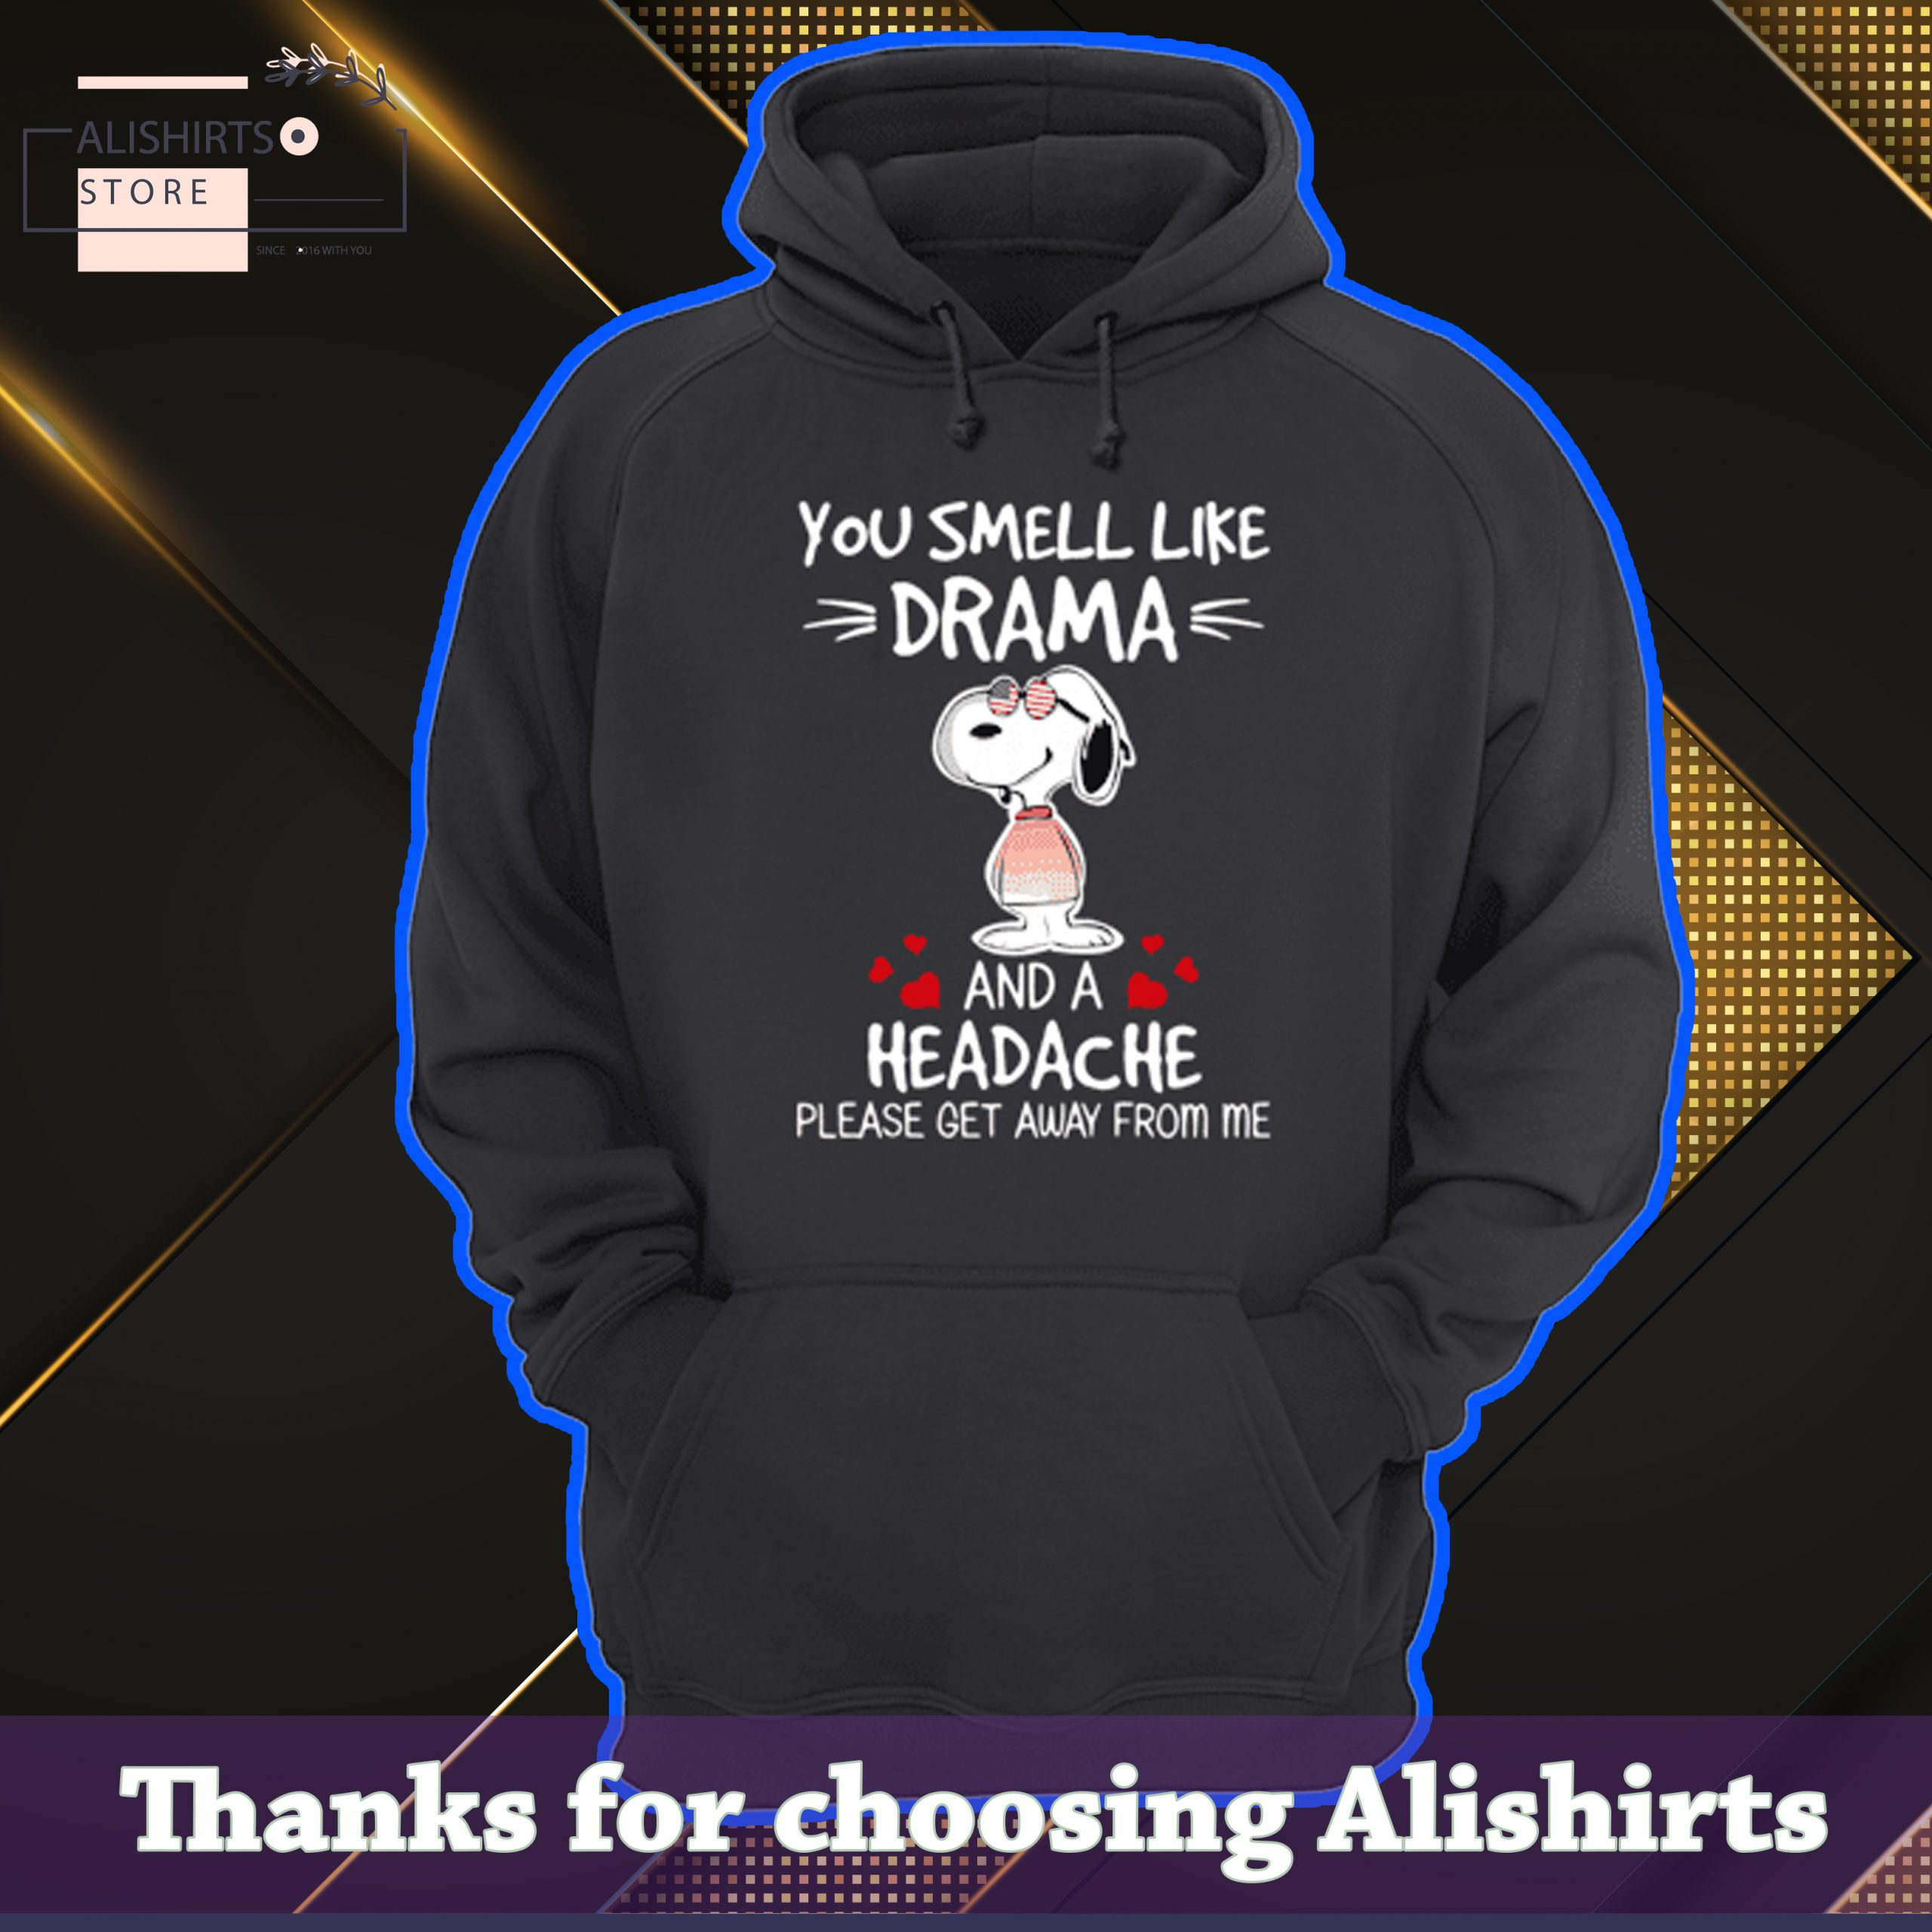 You smell like drama, and a Headache, Please get away from me tshirt, hoodie, long tee